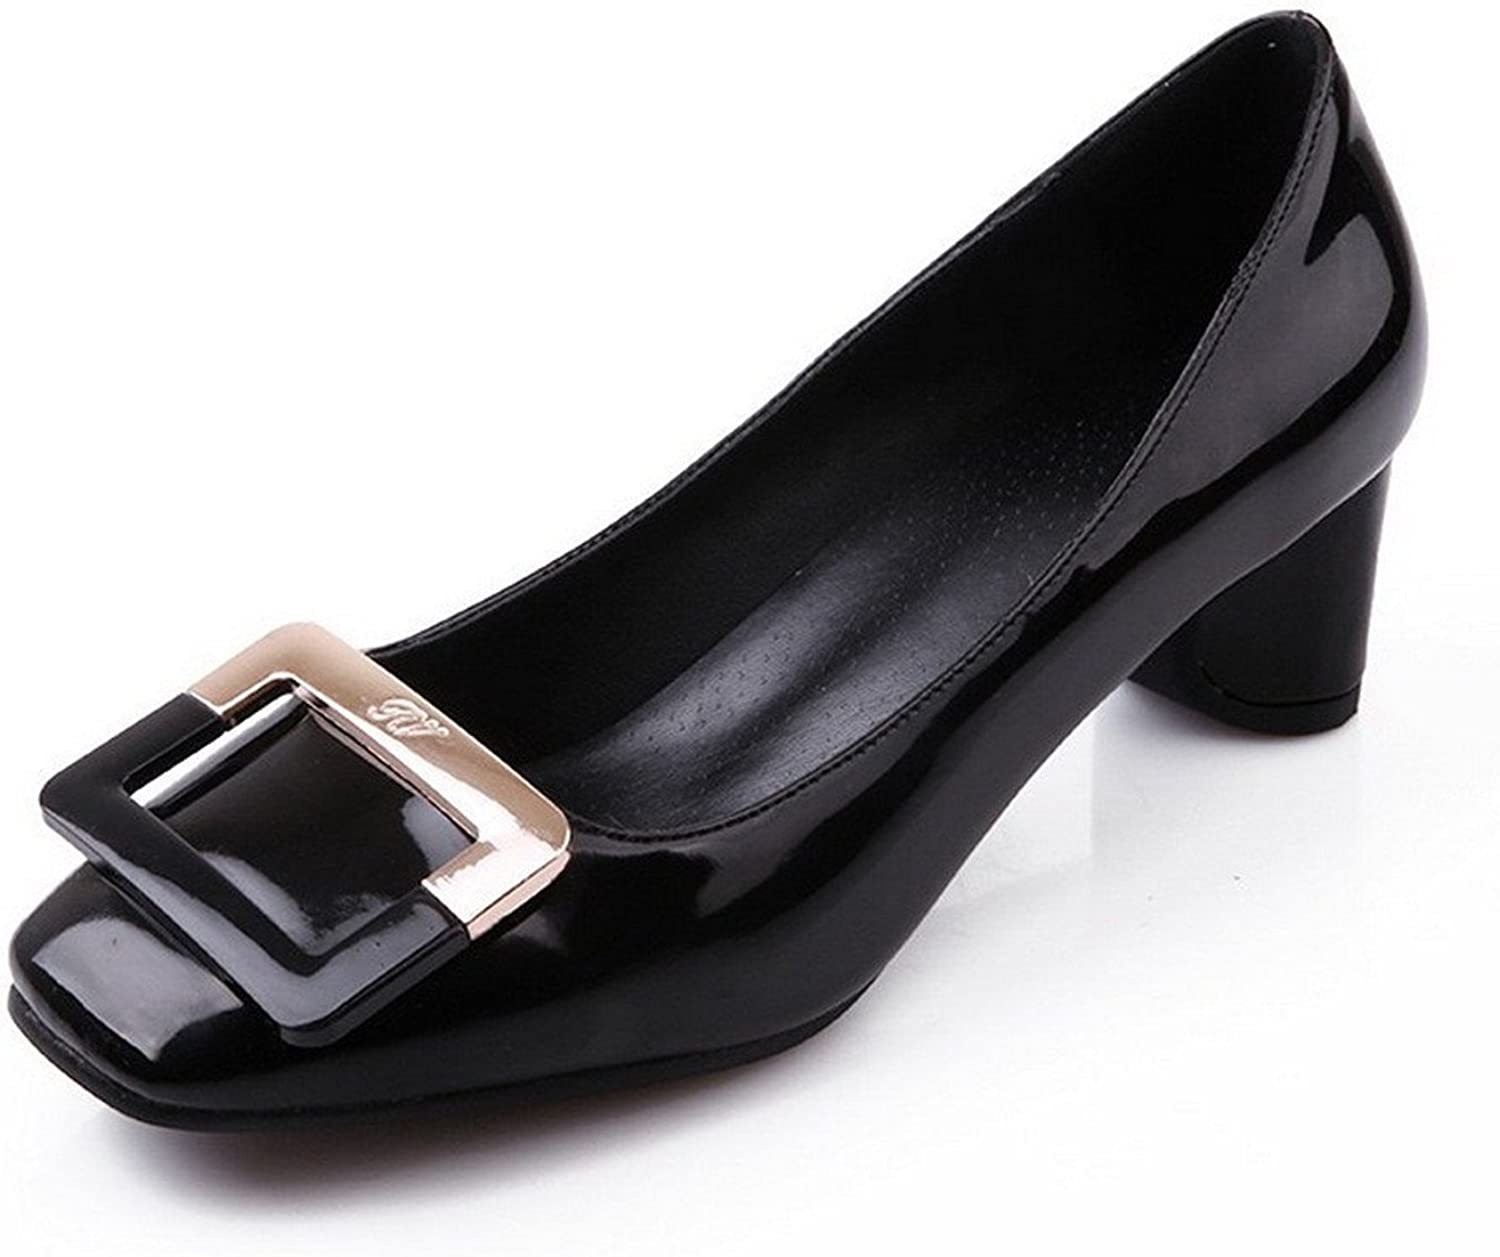 Tirahse Comfortable Women's Kitten Heels Patent Leather Solid Pull On Square Closed Toe Pumps-shoes